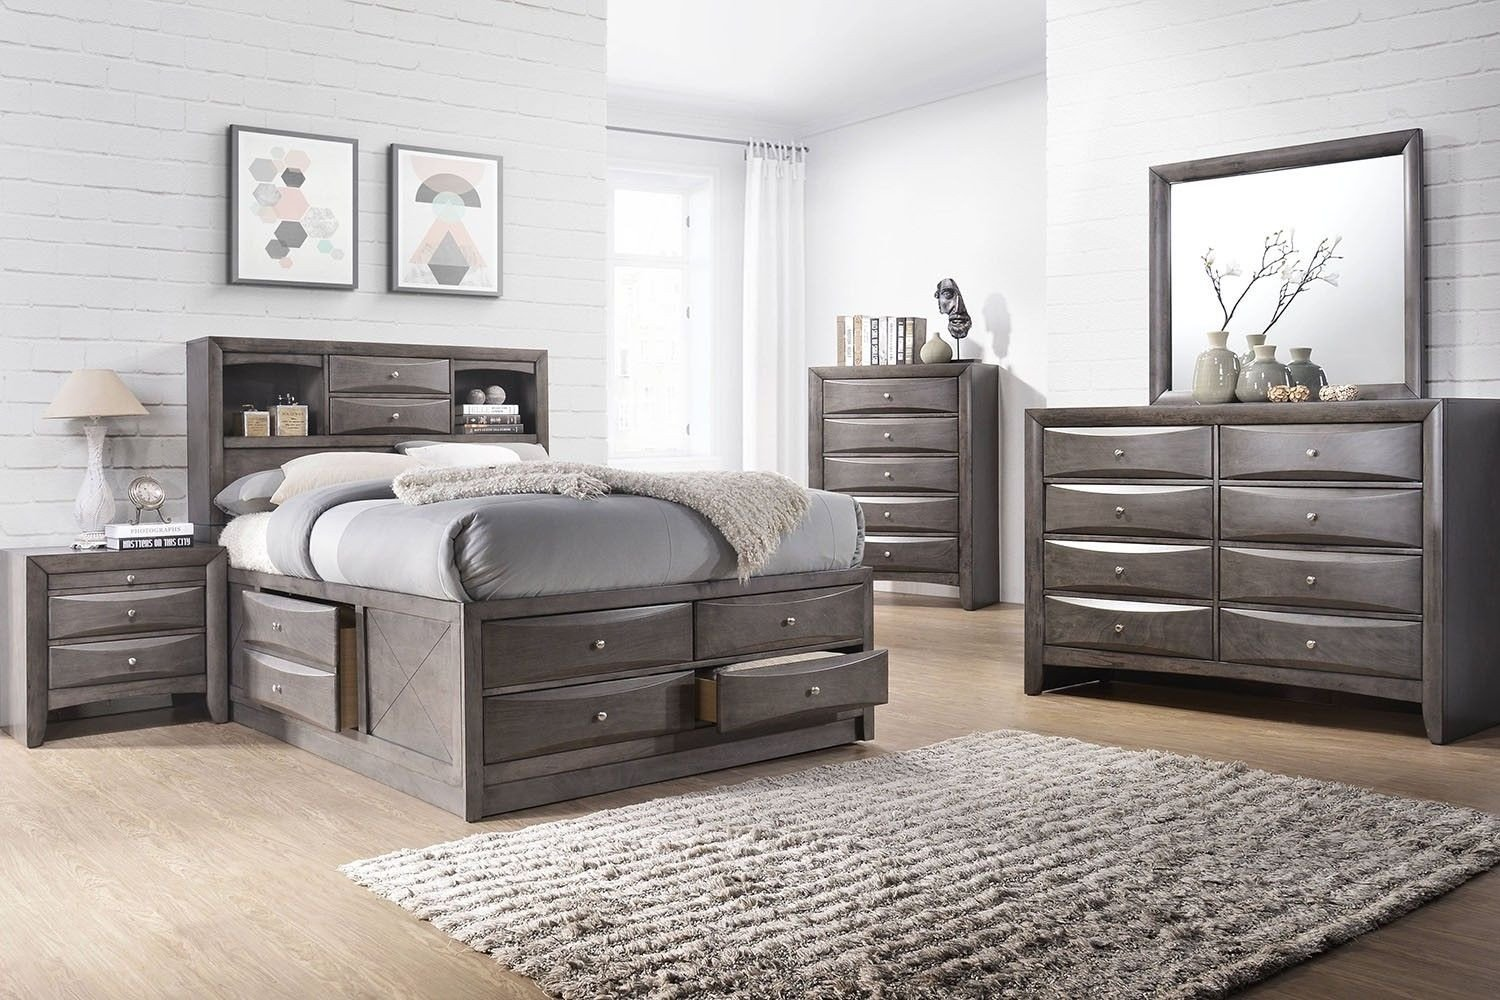 Kids Full Bedroom Set Inspirational the Remi Gray Storage Bedroom Pairs Cool Contoured Lines